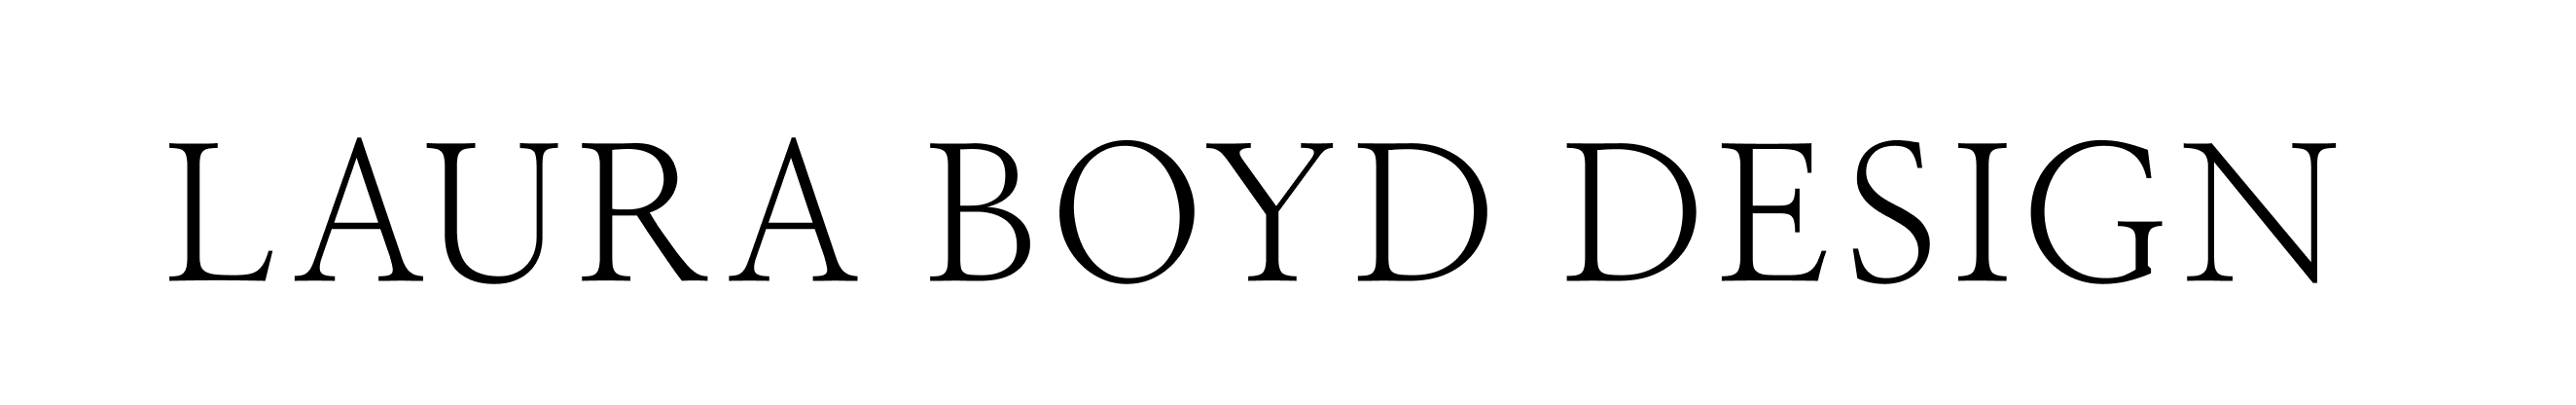 Laura Boyd Design logo